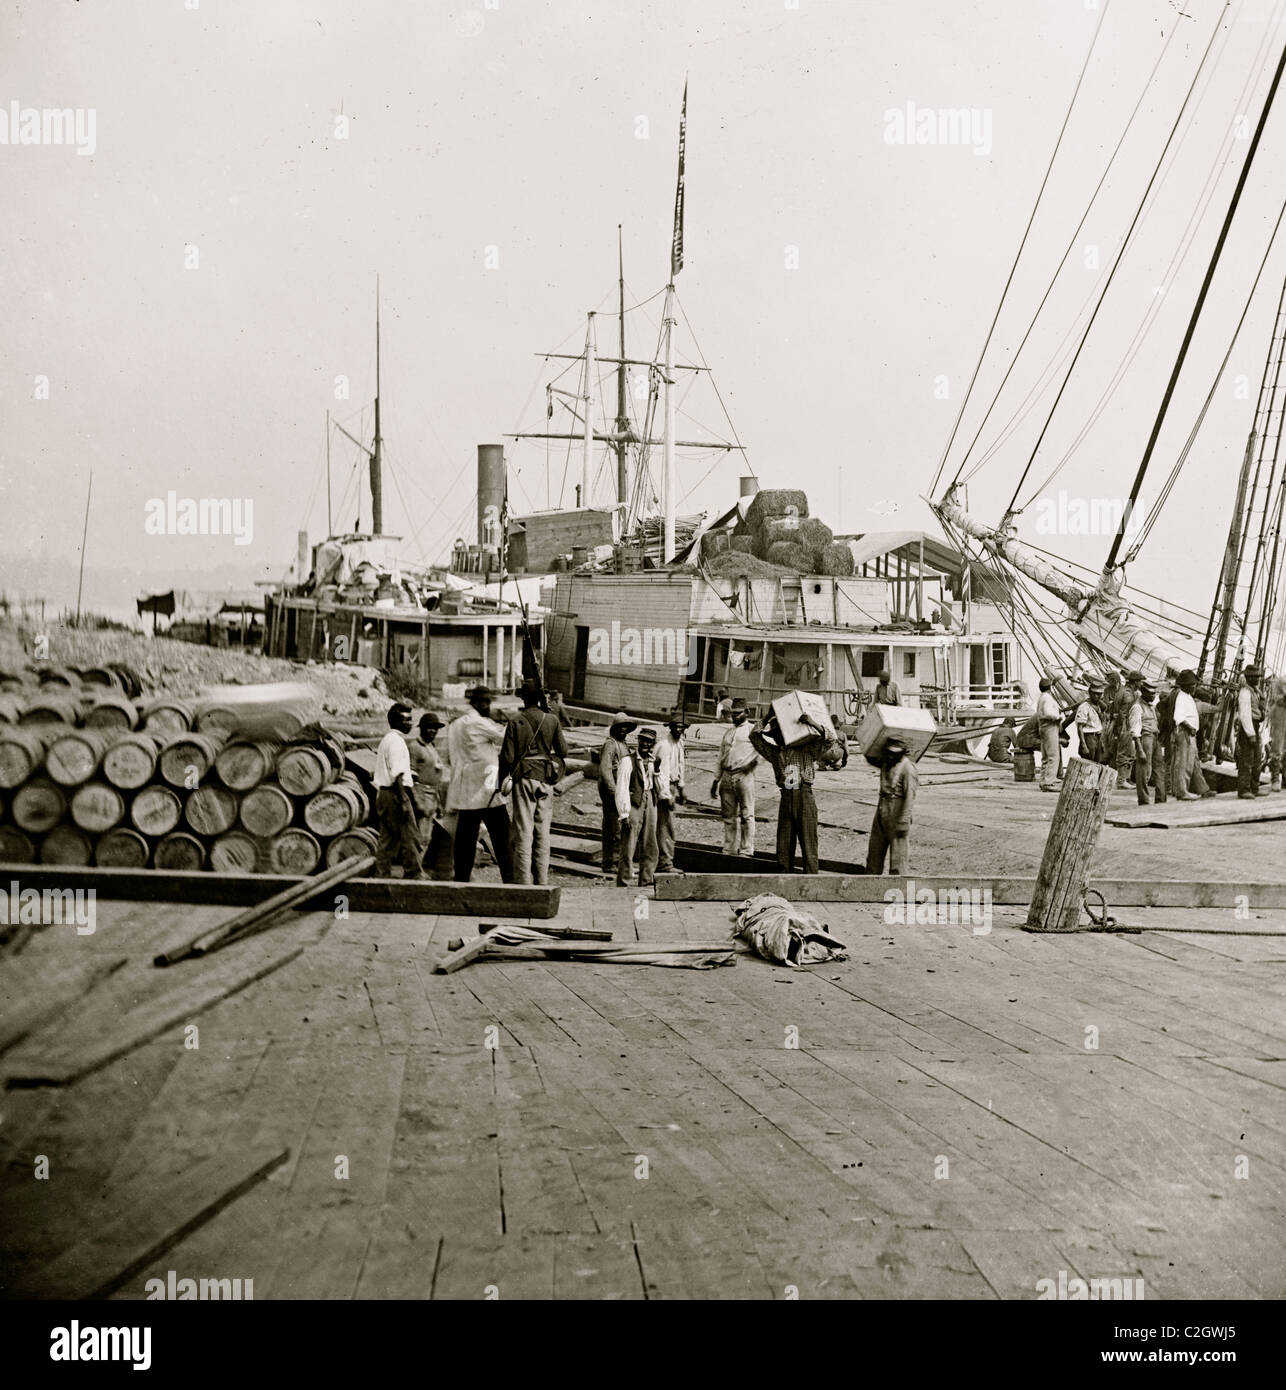 City Point, Va. African Americans unloading vessels at landing - Stock Image